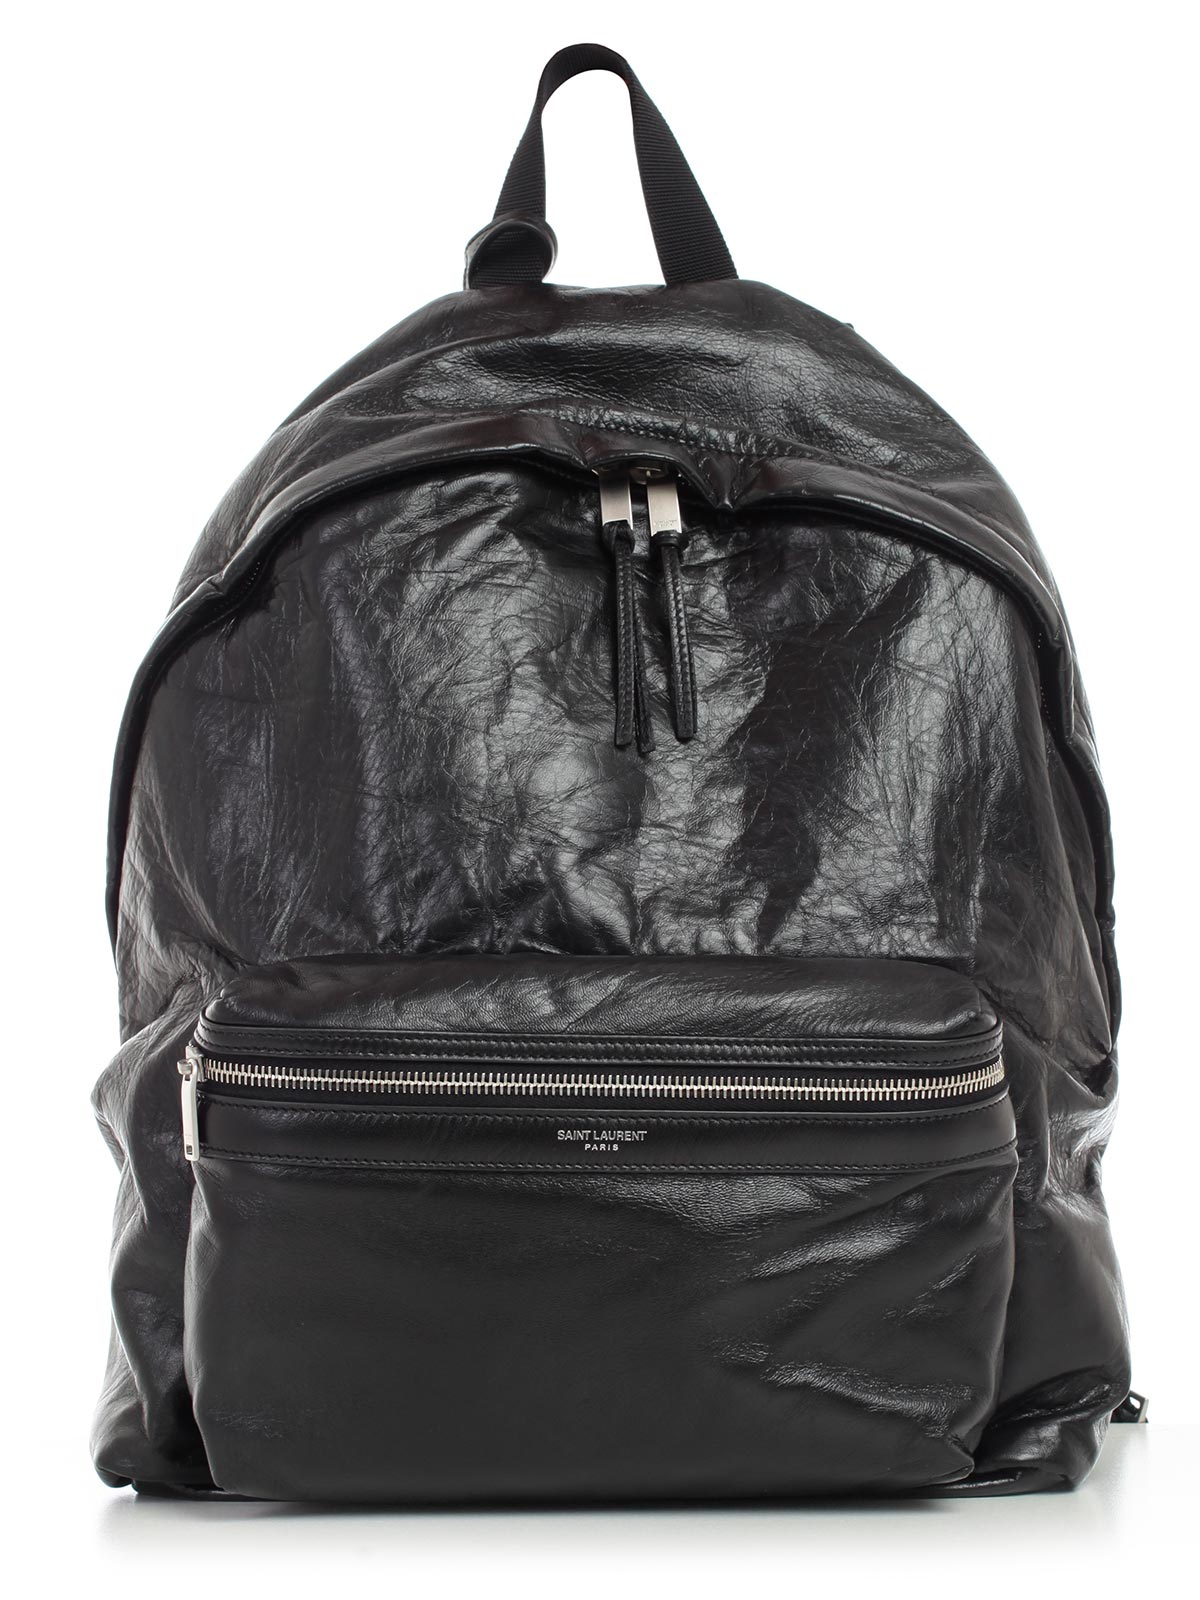 Picture of Saint Laurent Backpack